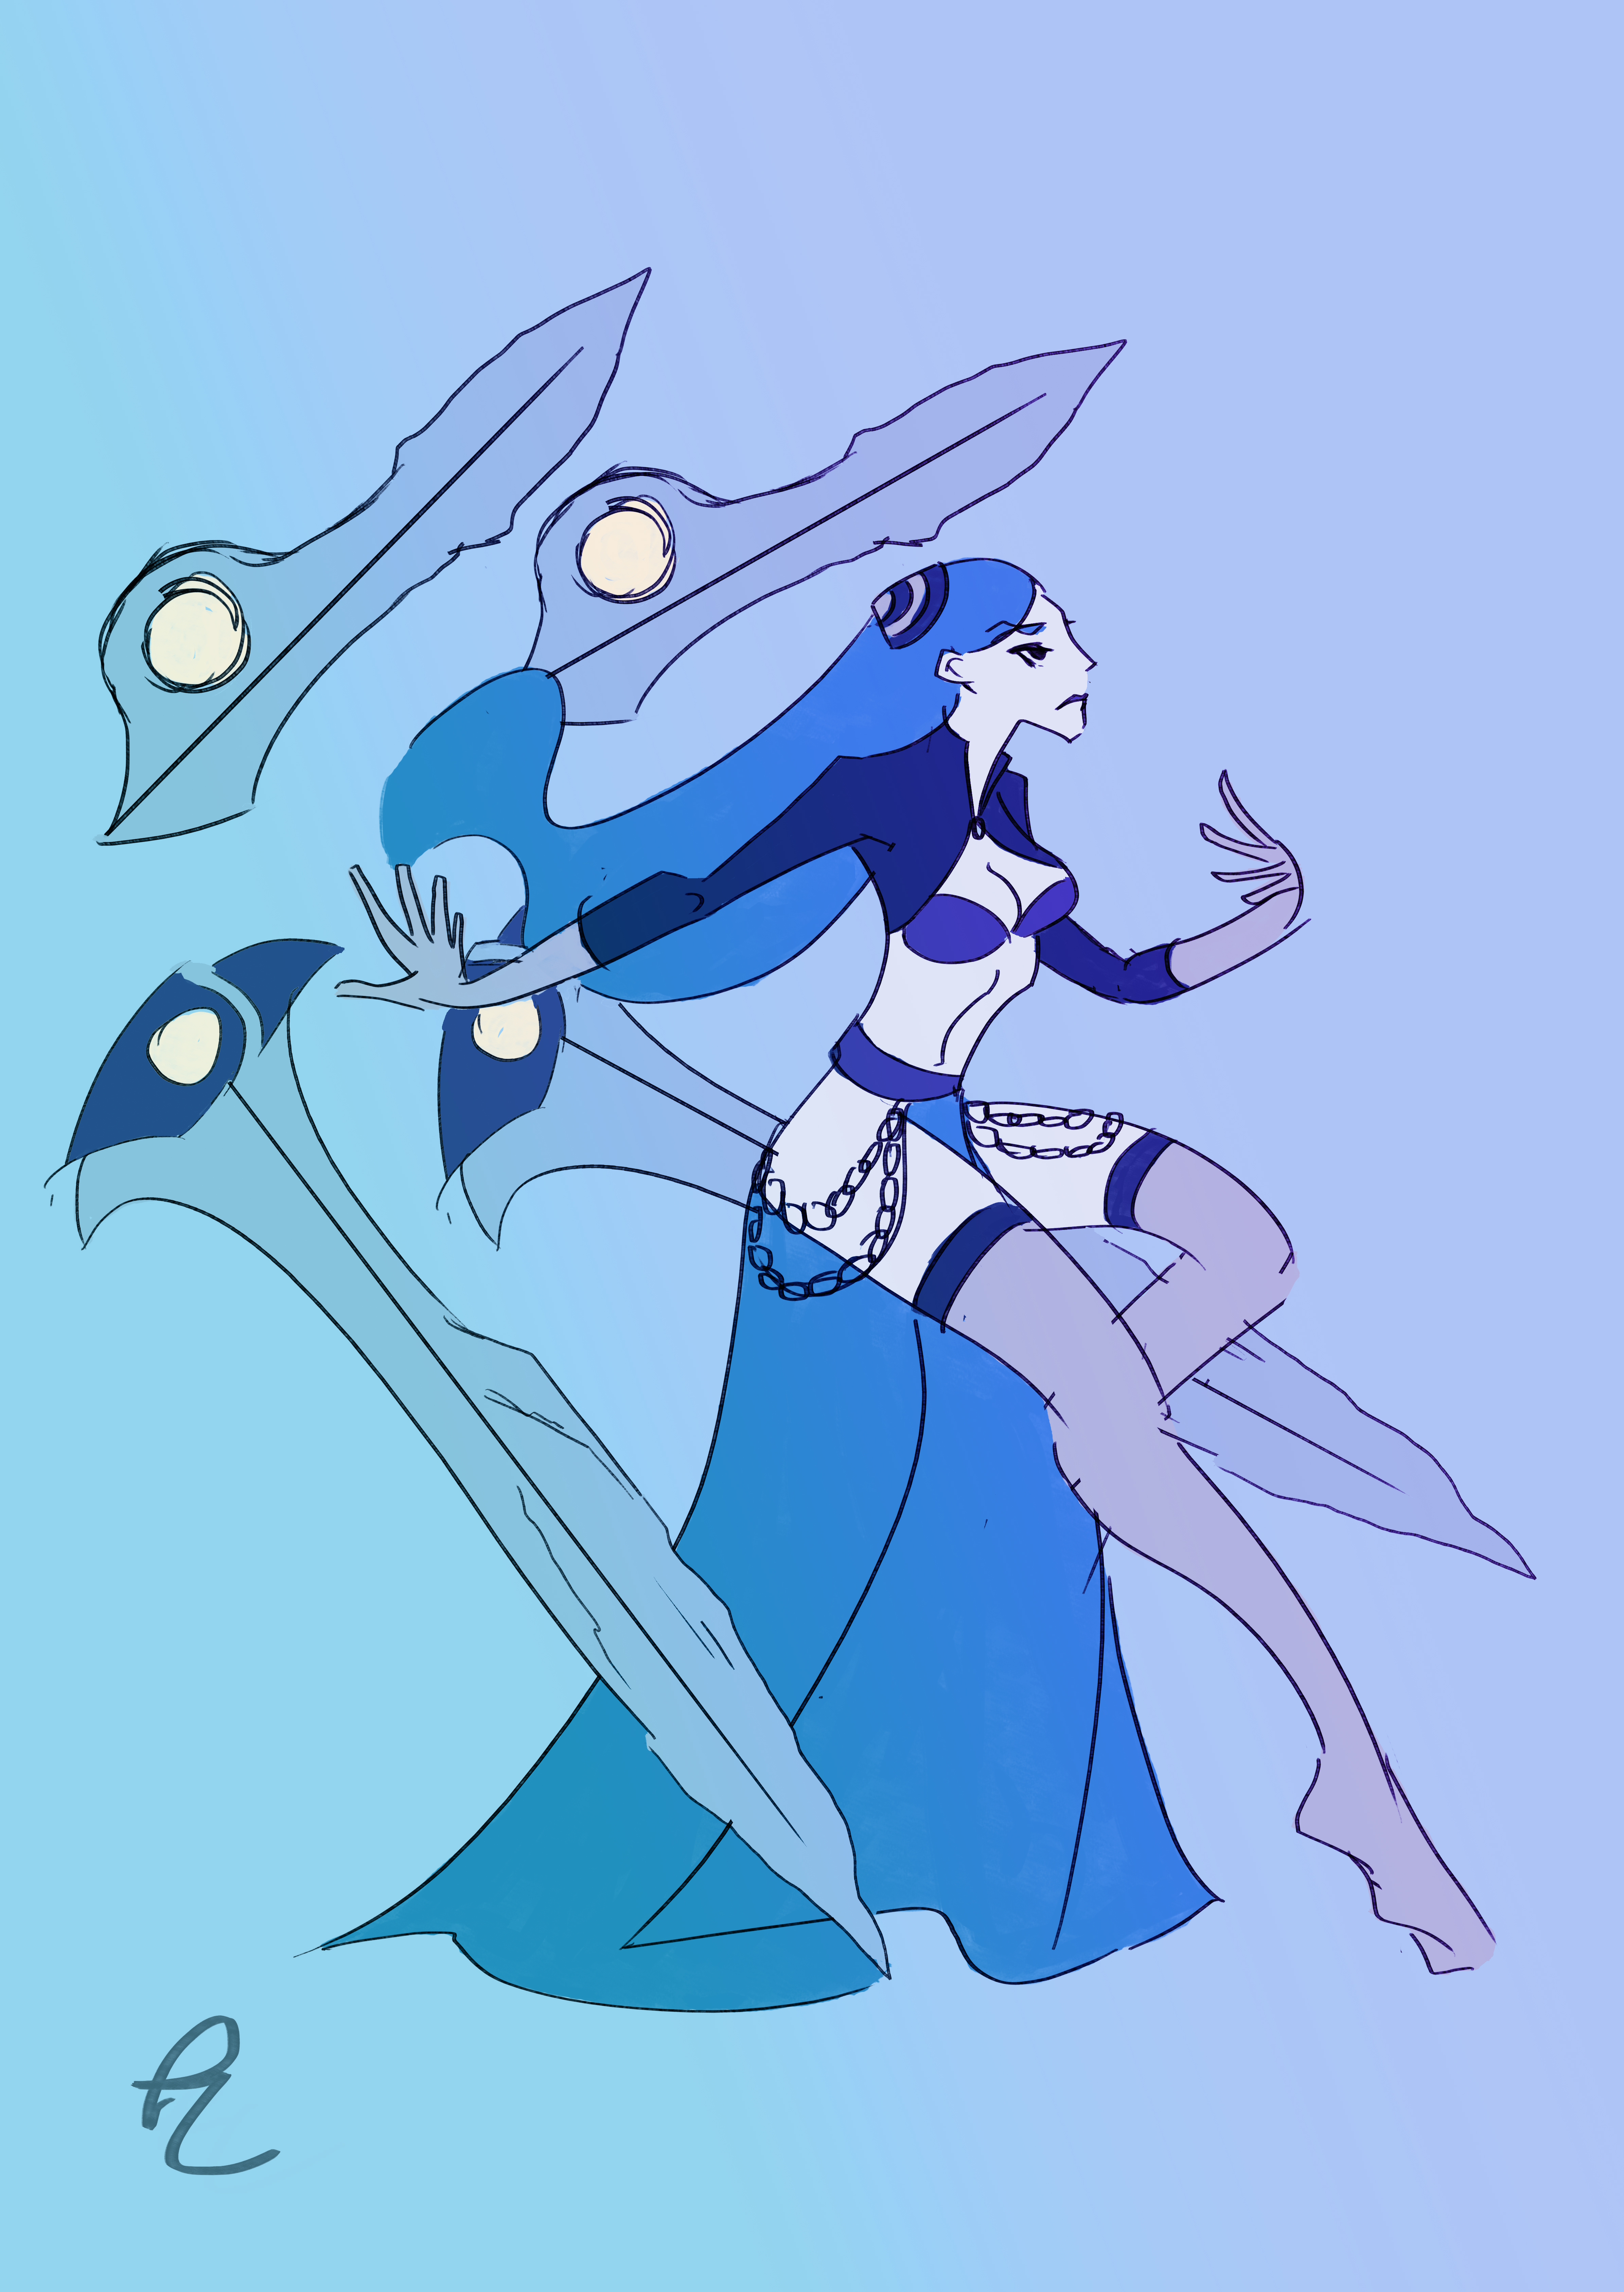 Irelia-costume-inspired-by-Frostblade-skin-and-Persian-Sword-Dancer-wallpaper-wp5009197